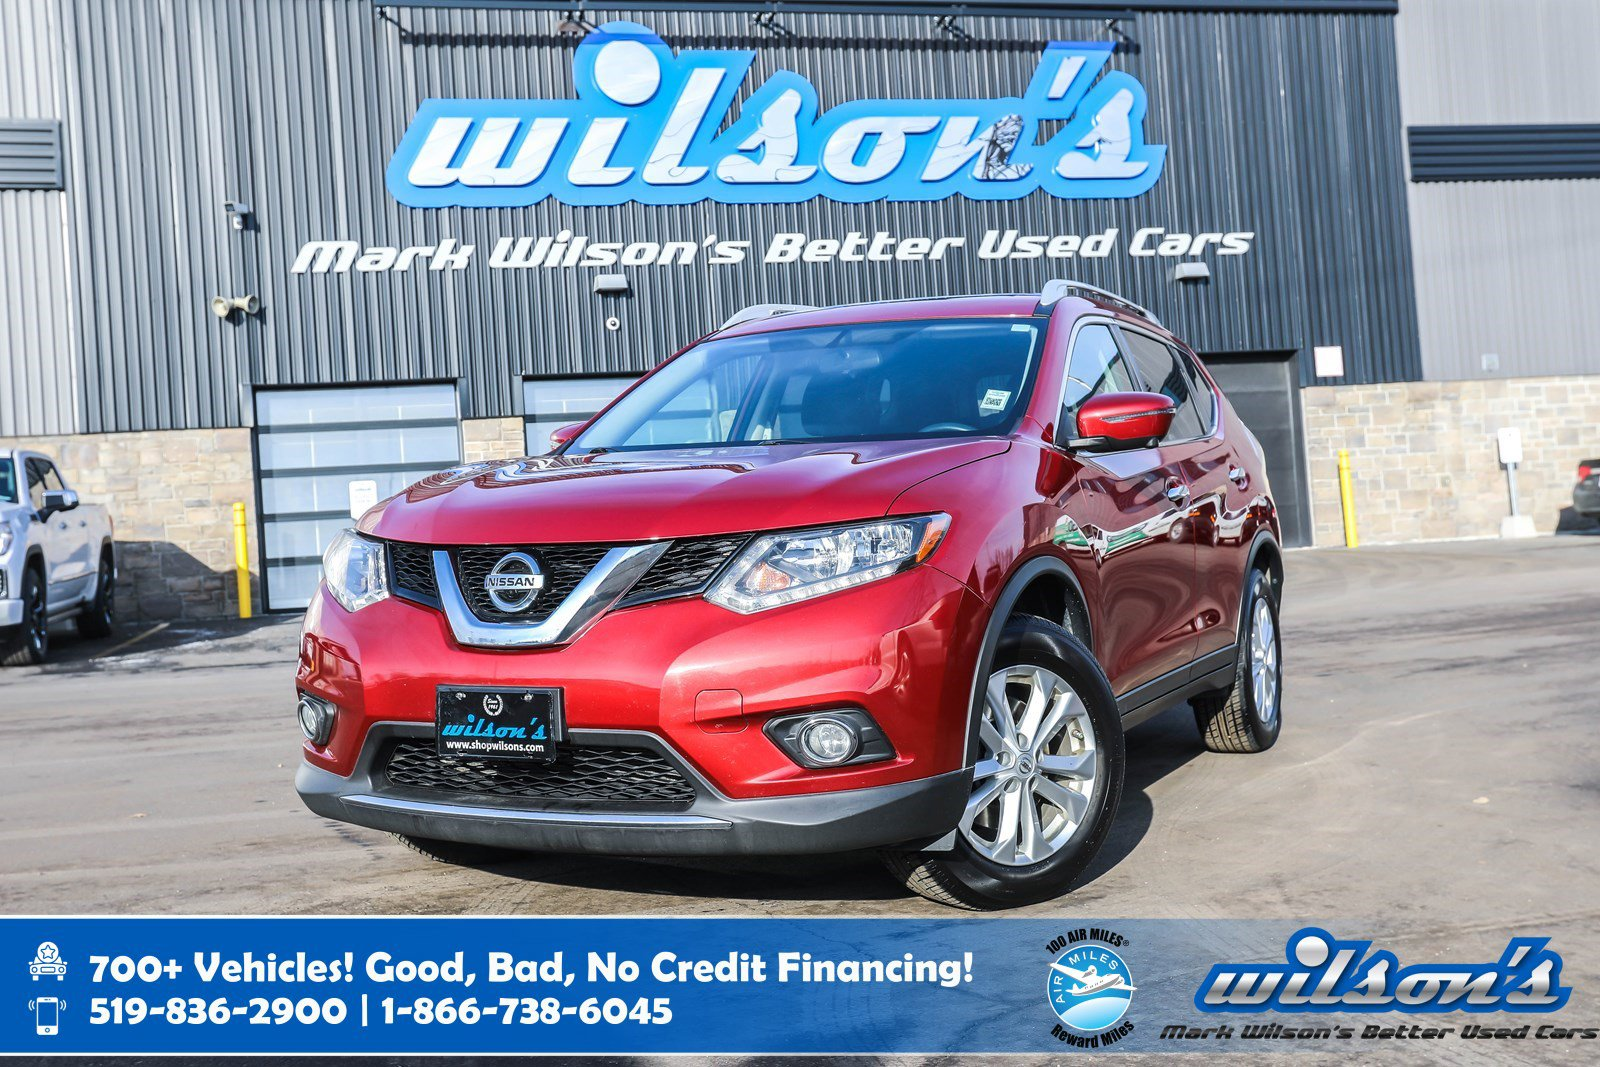 Certified Pre-Owned 2016 Nissan Rogue SV AWD, 7 Pass, Navigation, Sunroof, Power Seat, Heated Seats, Bluetooth, Rear Camera and more!